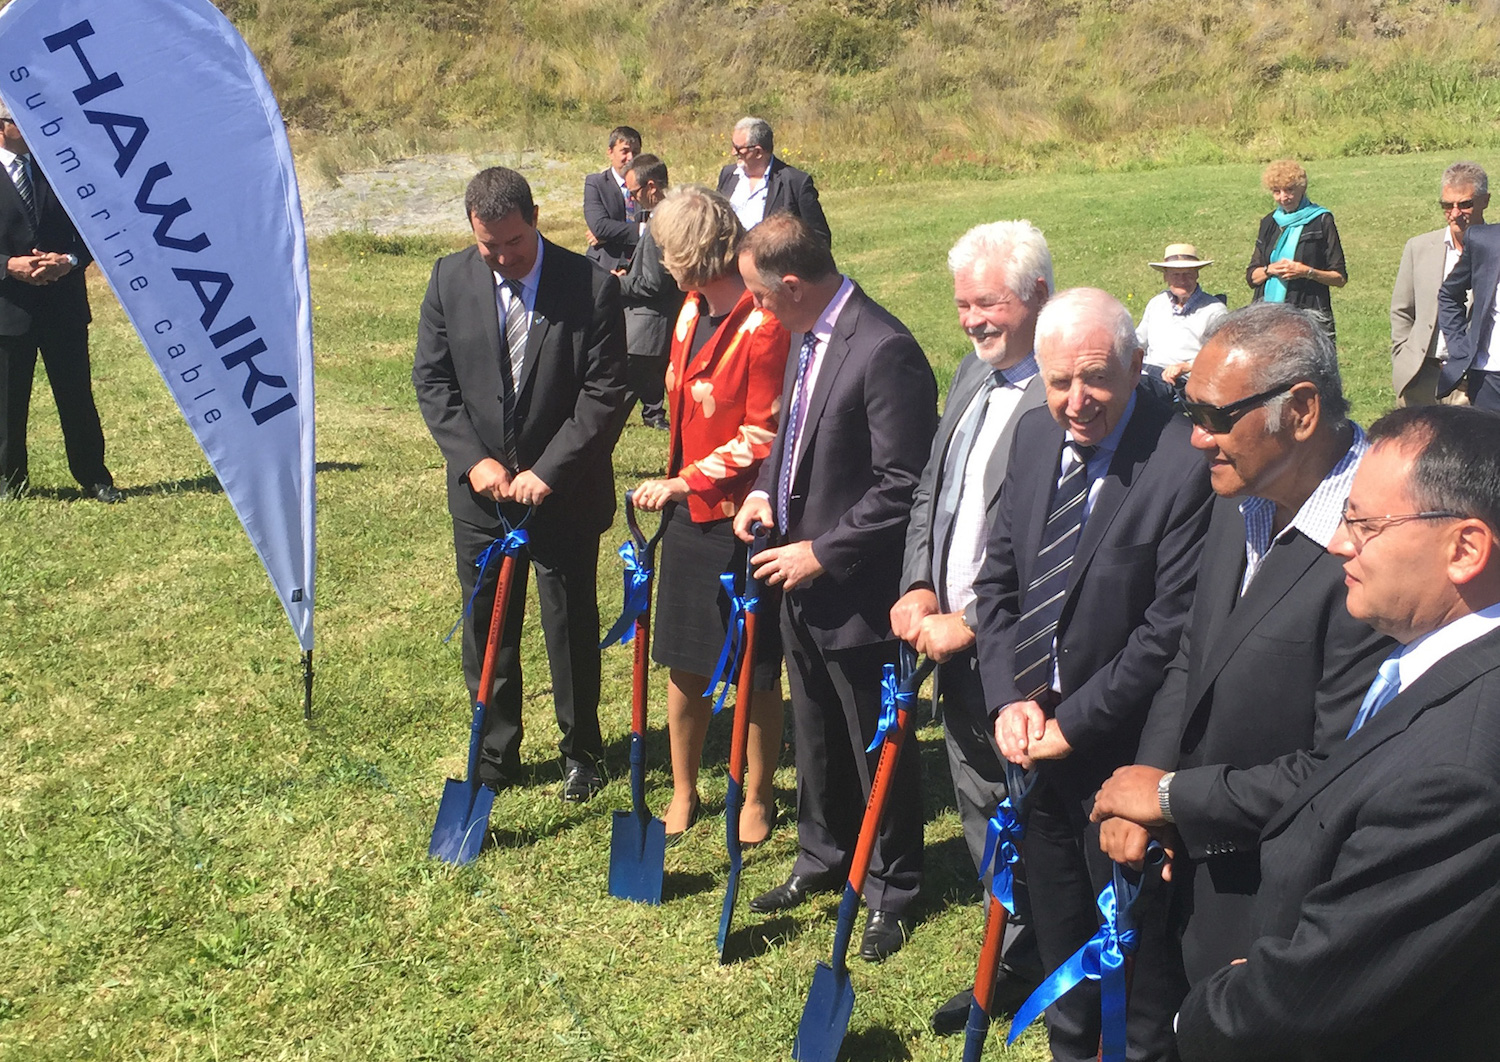 New Zealand's former Prime Minister, John Keys (third from left), attended the New Zealand ground-breaking ceremony for the Hawaiki Cable.